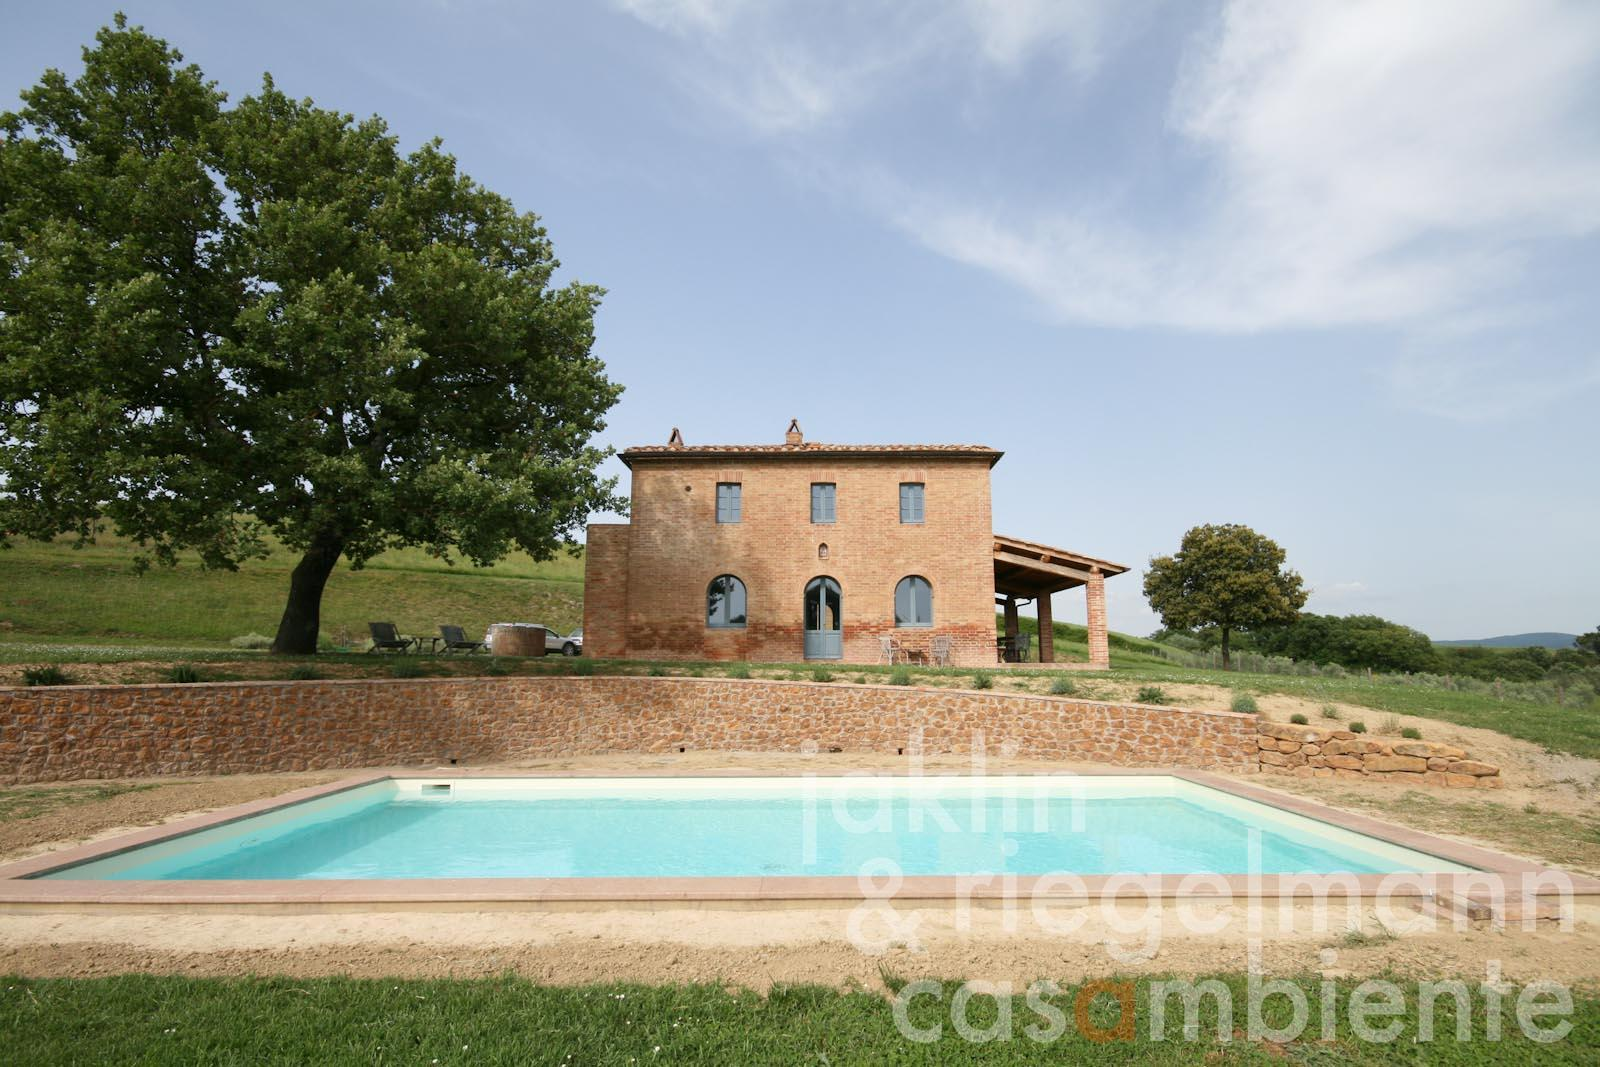 The thoroughly restored farmhouse for sale in the Crete Senesi with pool, olive grove and panoramic views